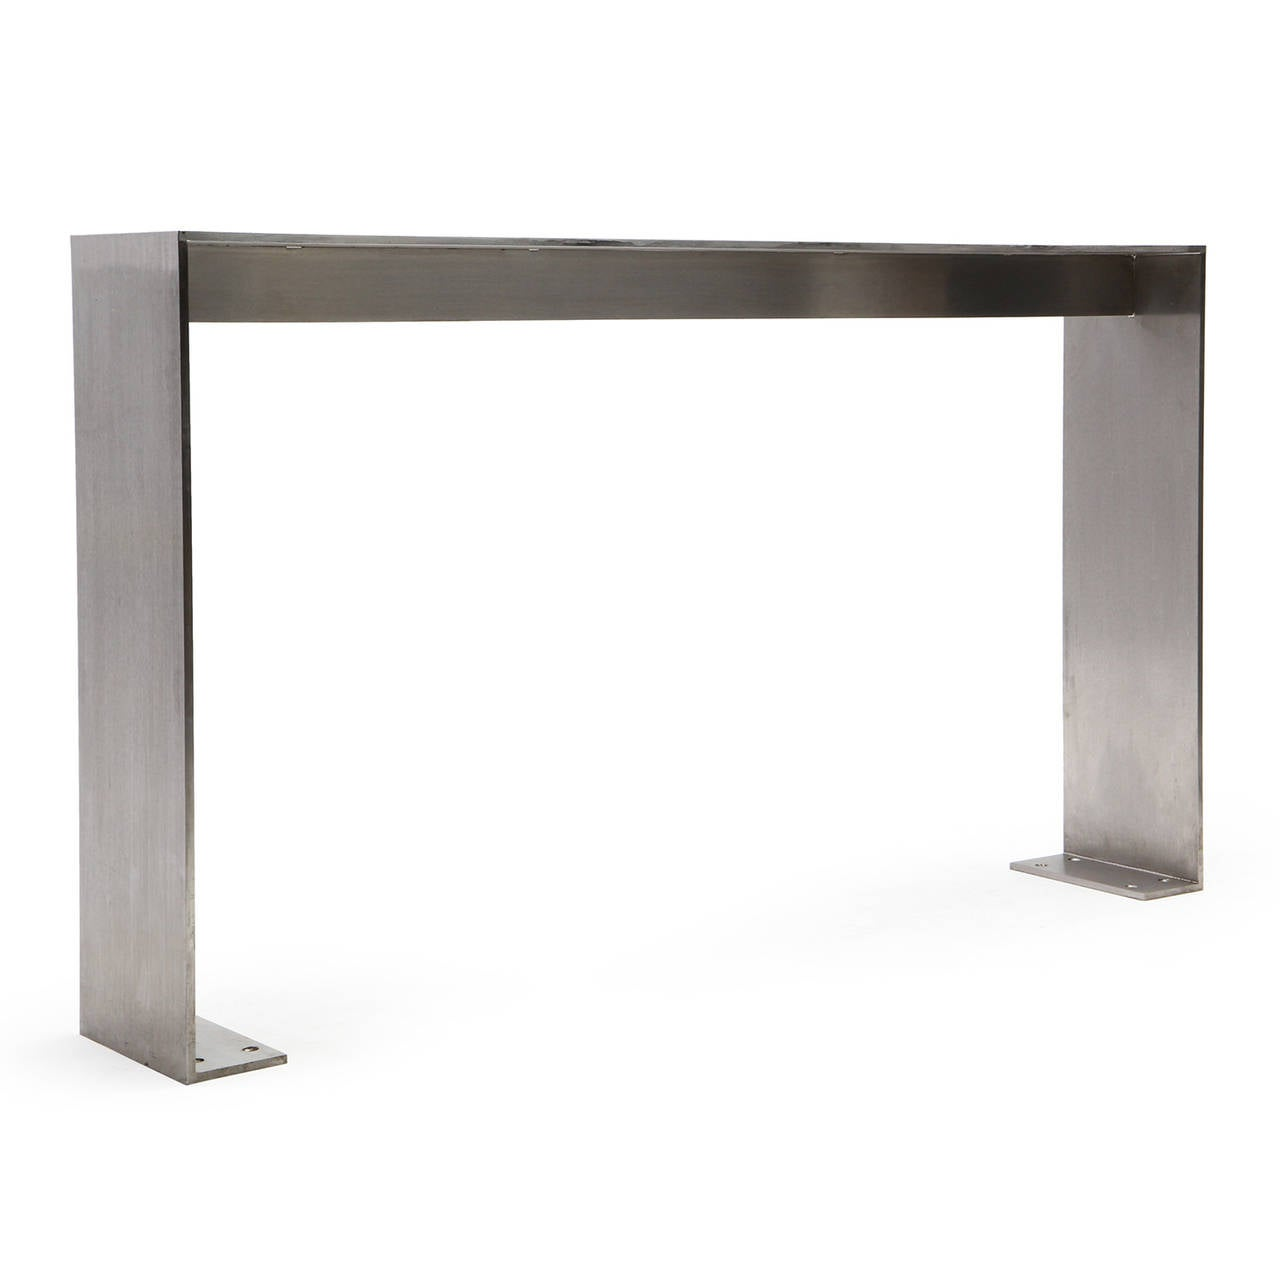 1980s Minimalist Steel Table from Yankee Stadium In Good Condition For Sale In Sagaponack, NY